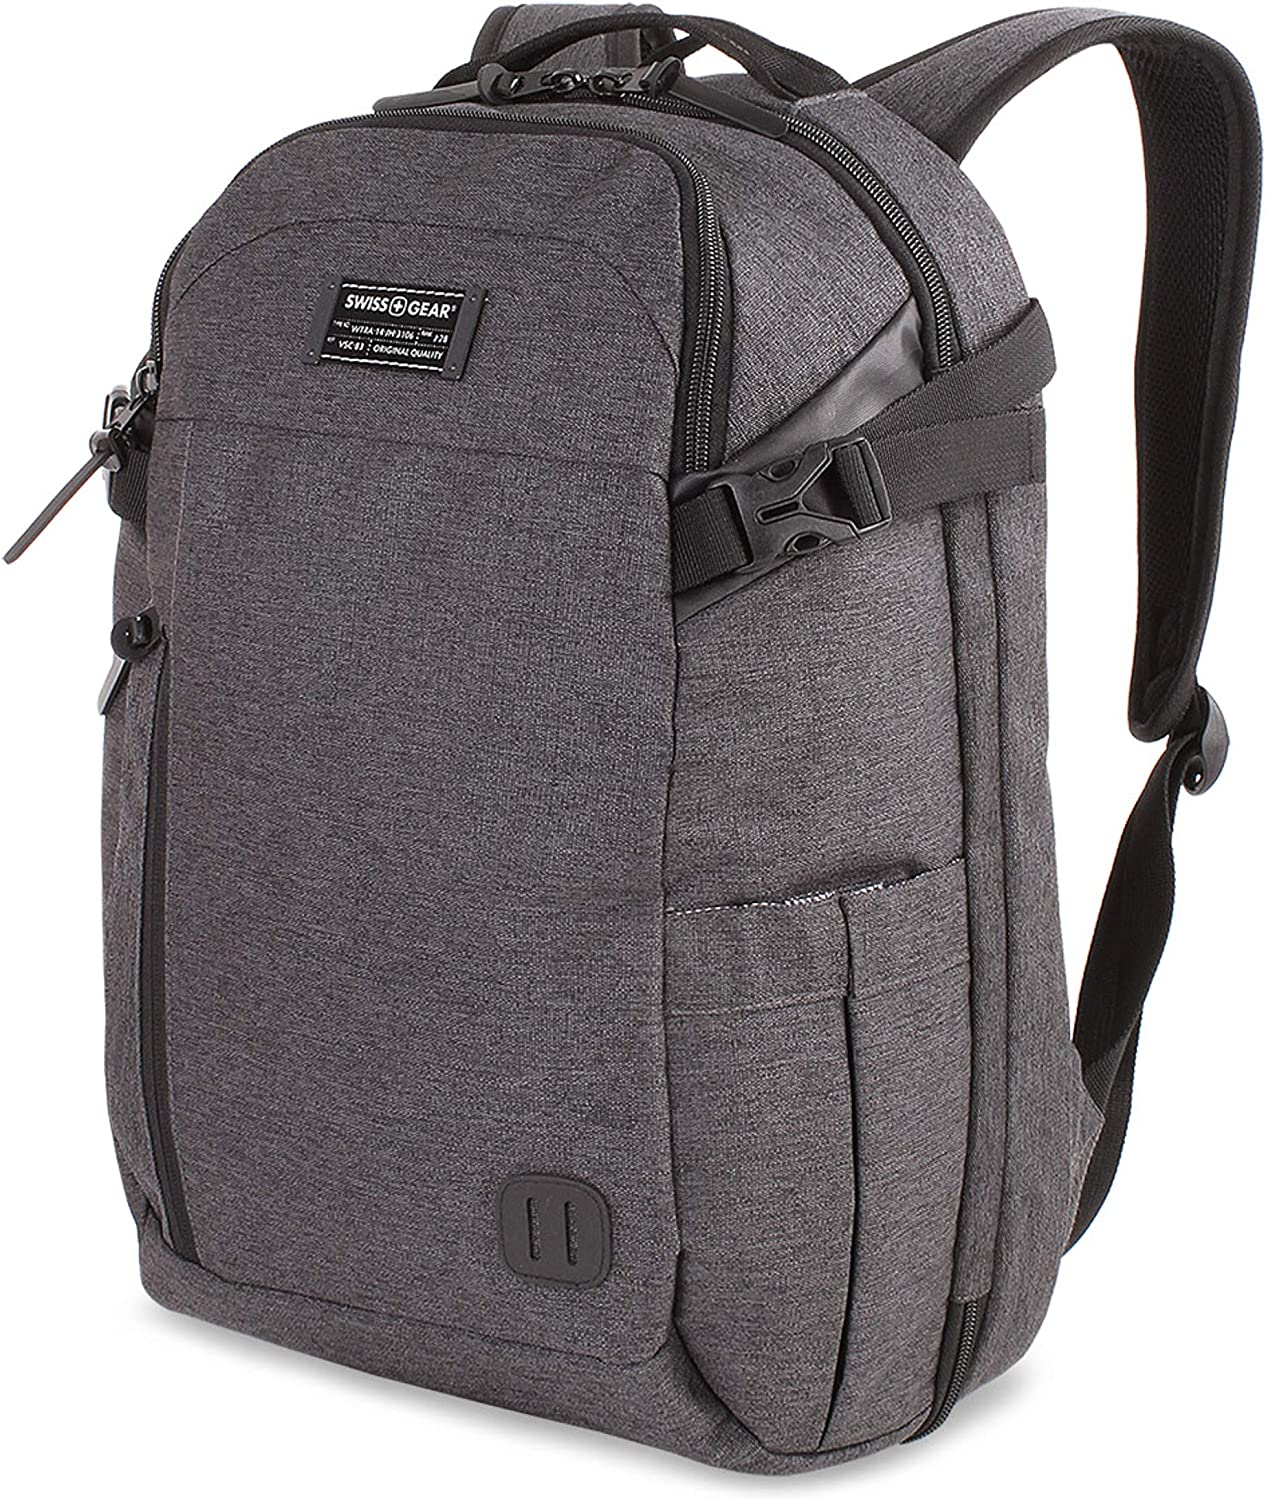 Top 10 Swiss Gear 18 Lightweight Laptop Backpack